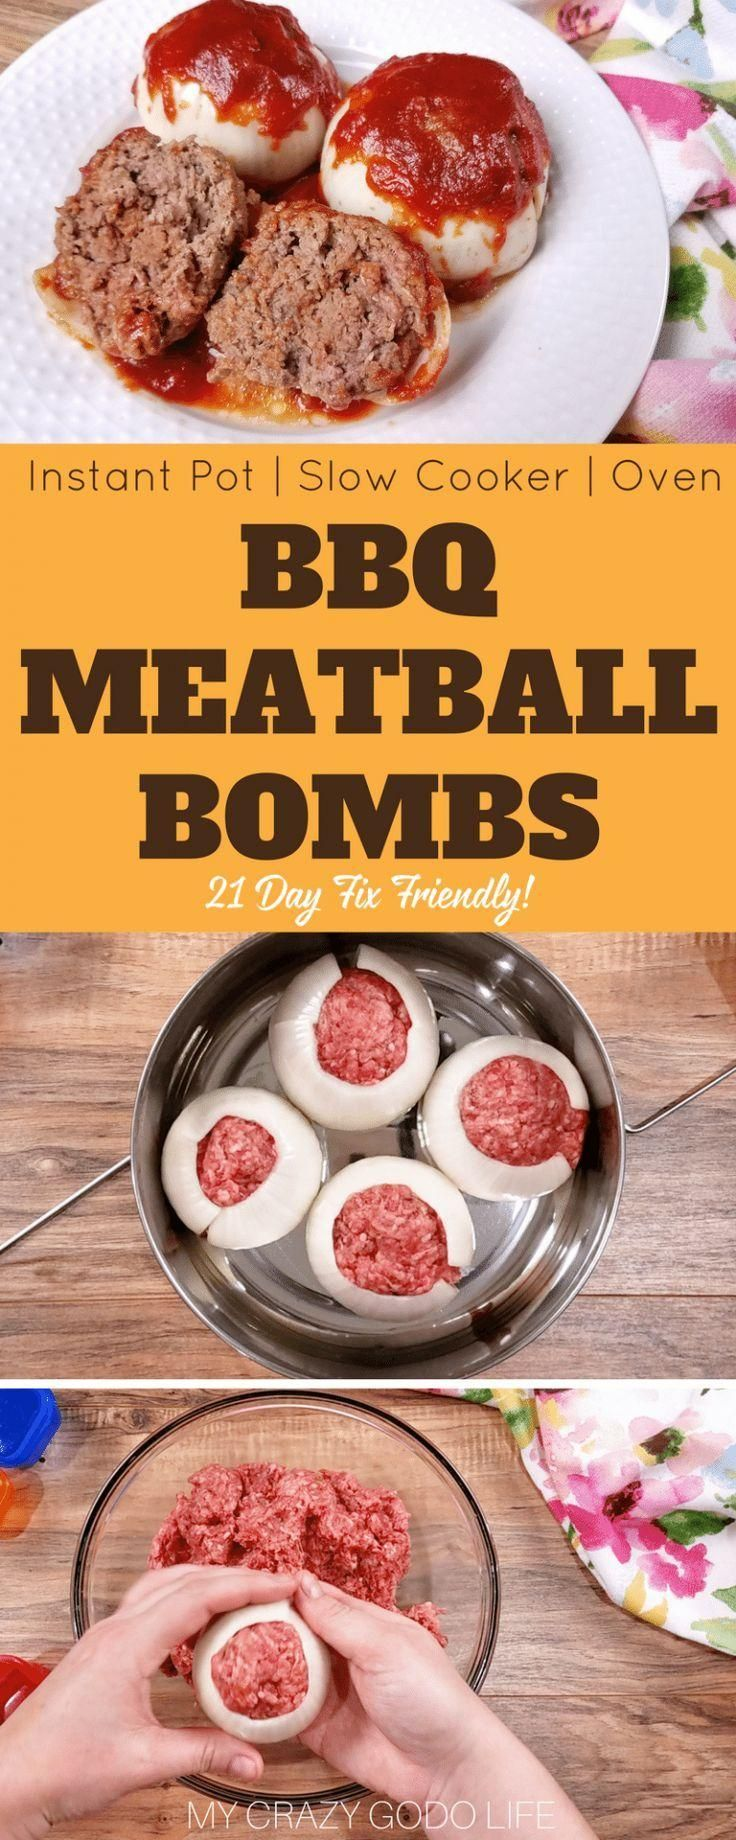 Mini BBQ Meatloaf Bombs are a delicious and healthy dinner that is family friend  21 Day Fix Instant Pot Recipes